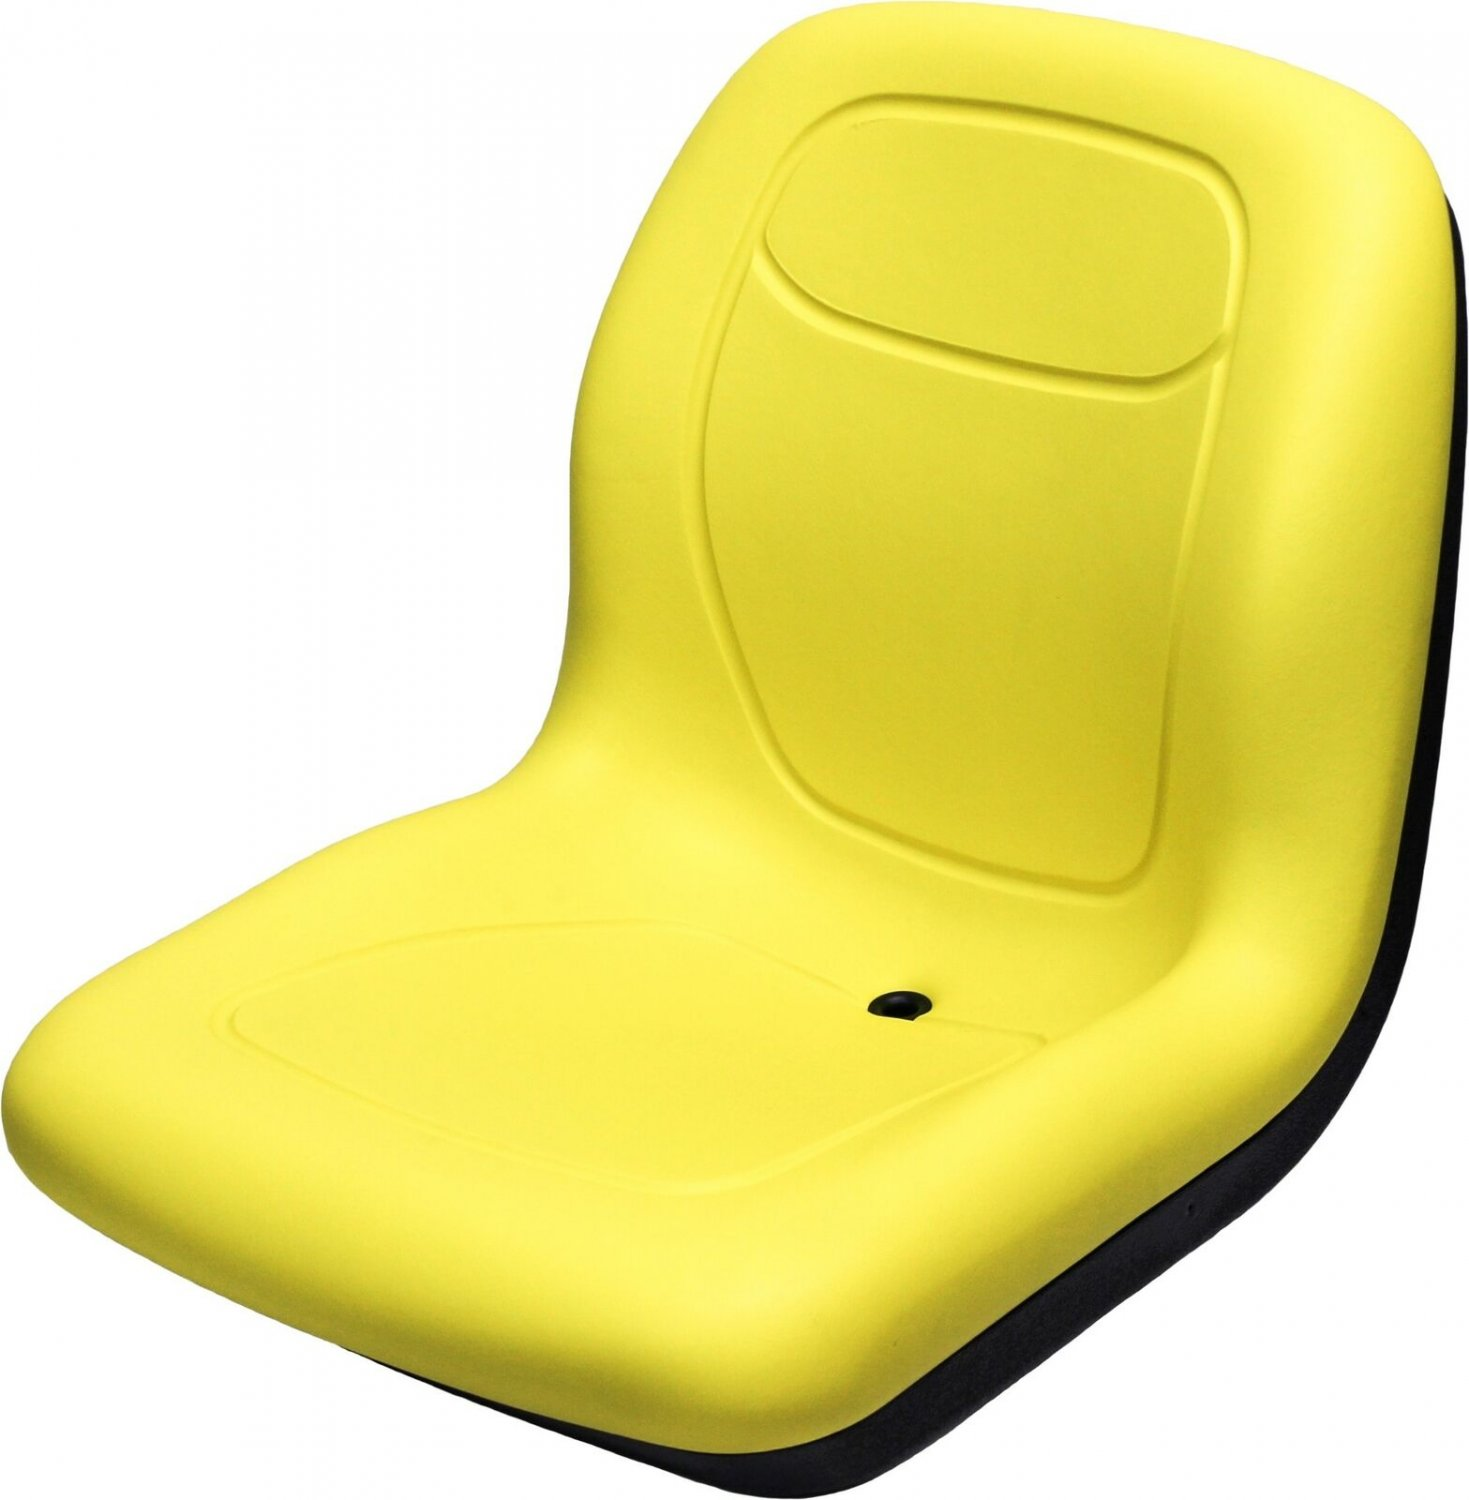 John Deere Yellow Vinyl Seat fits Gator 6X4 Serial # 20789 & UP